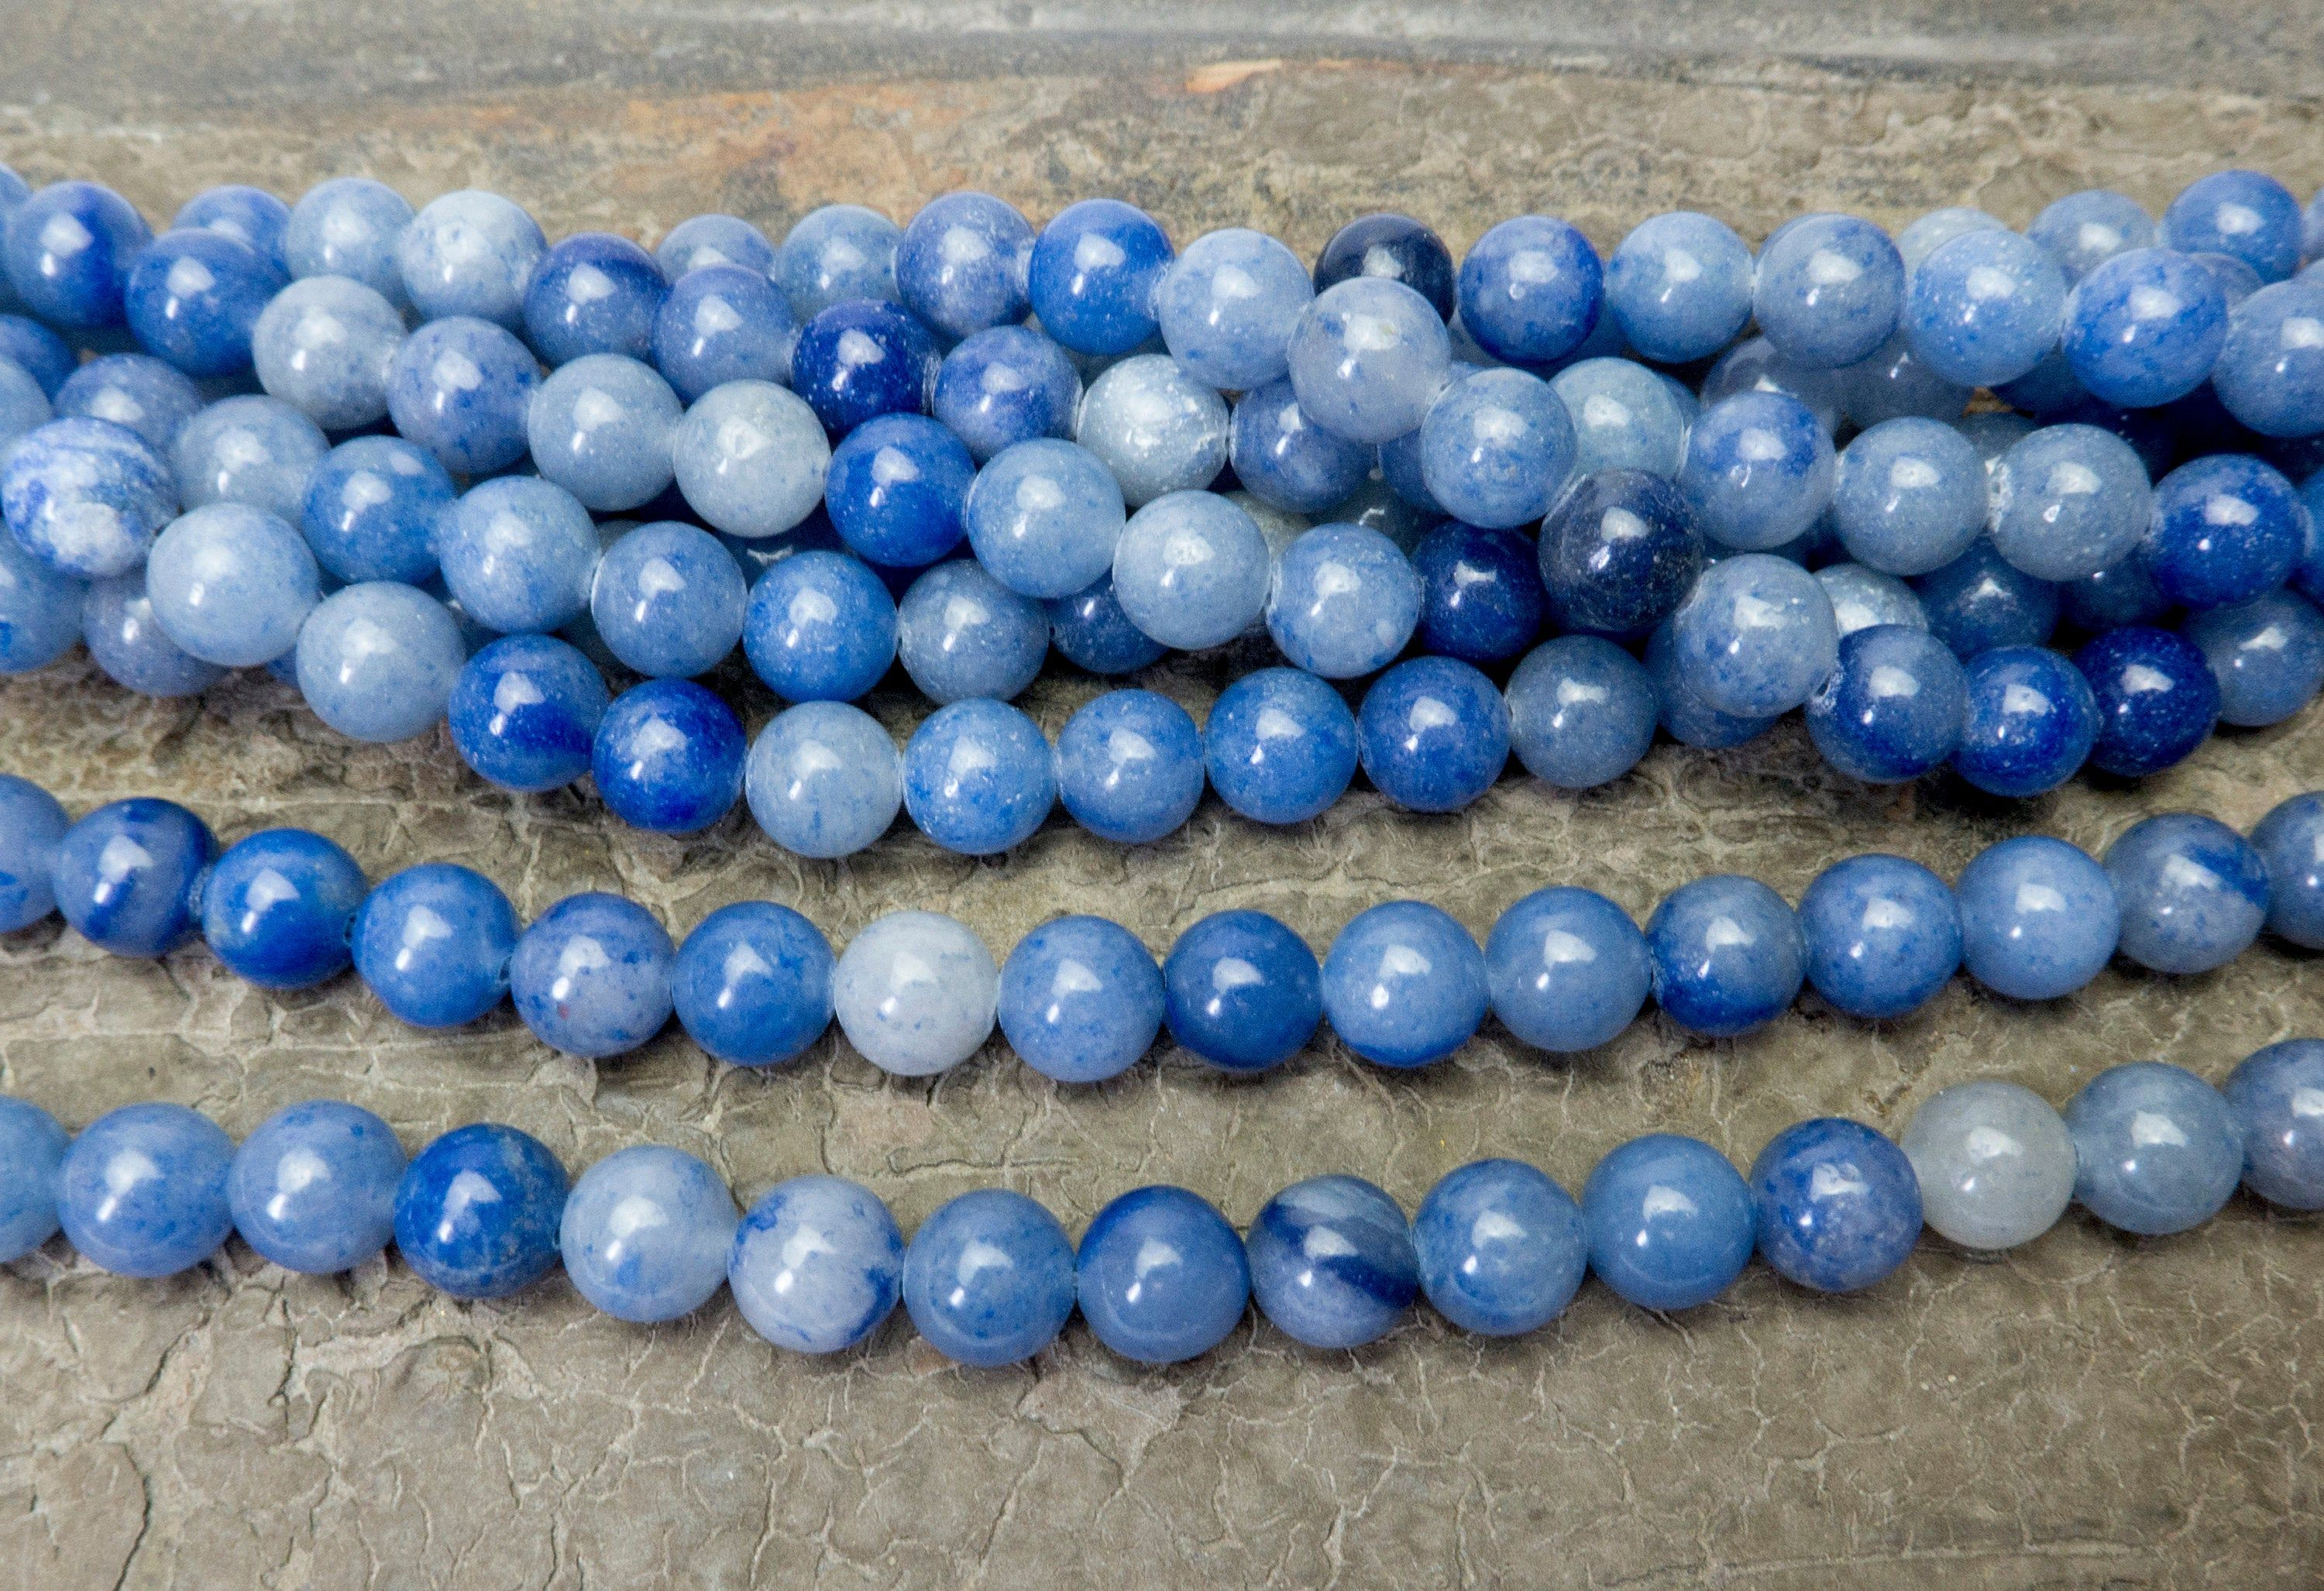 Blue Aventurine Beads for Jewelry Making Beads Blue Beads Jewelry Beads And Supplies Bracelets Beads Necklace Brads  Mala Making Beads